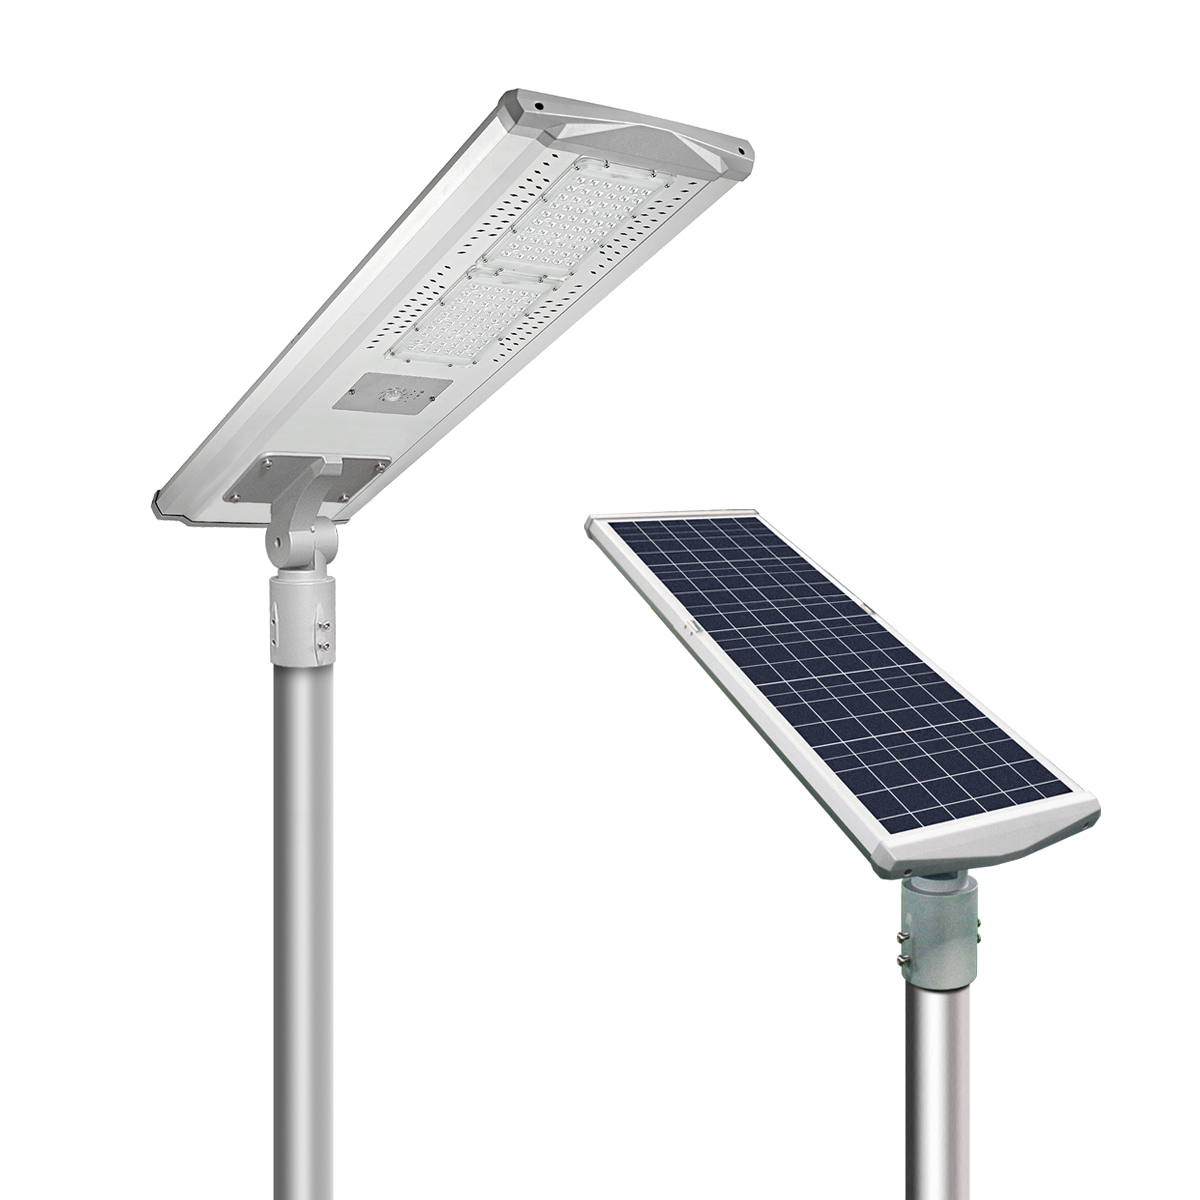 TC series smart MPPT CE Waterproof 60W adjustable Motion Sensor Remote Control Integrated lithium battery Solar led Street Light,all in one Solar Street Light,LiFePO4 solar lamp,Solar Garden Light,led urban lights,led road luminaires,led street lamp,five years warranty